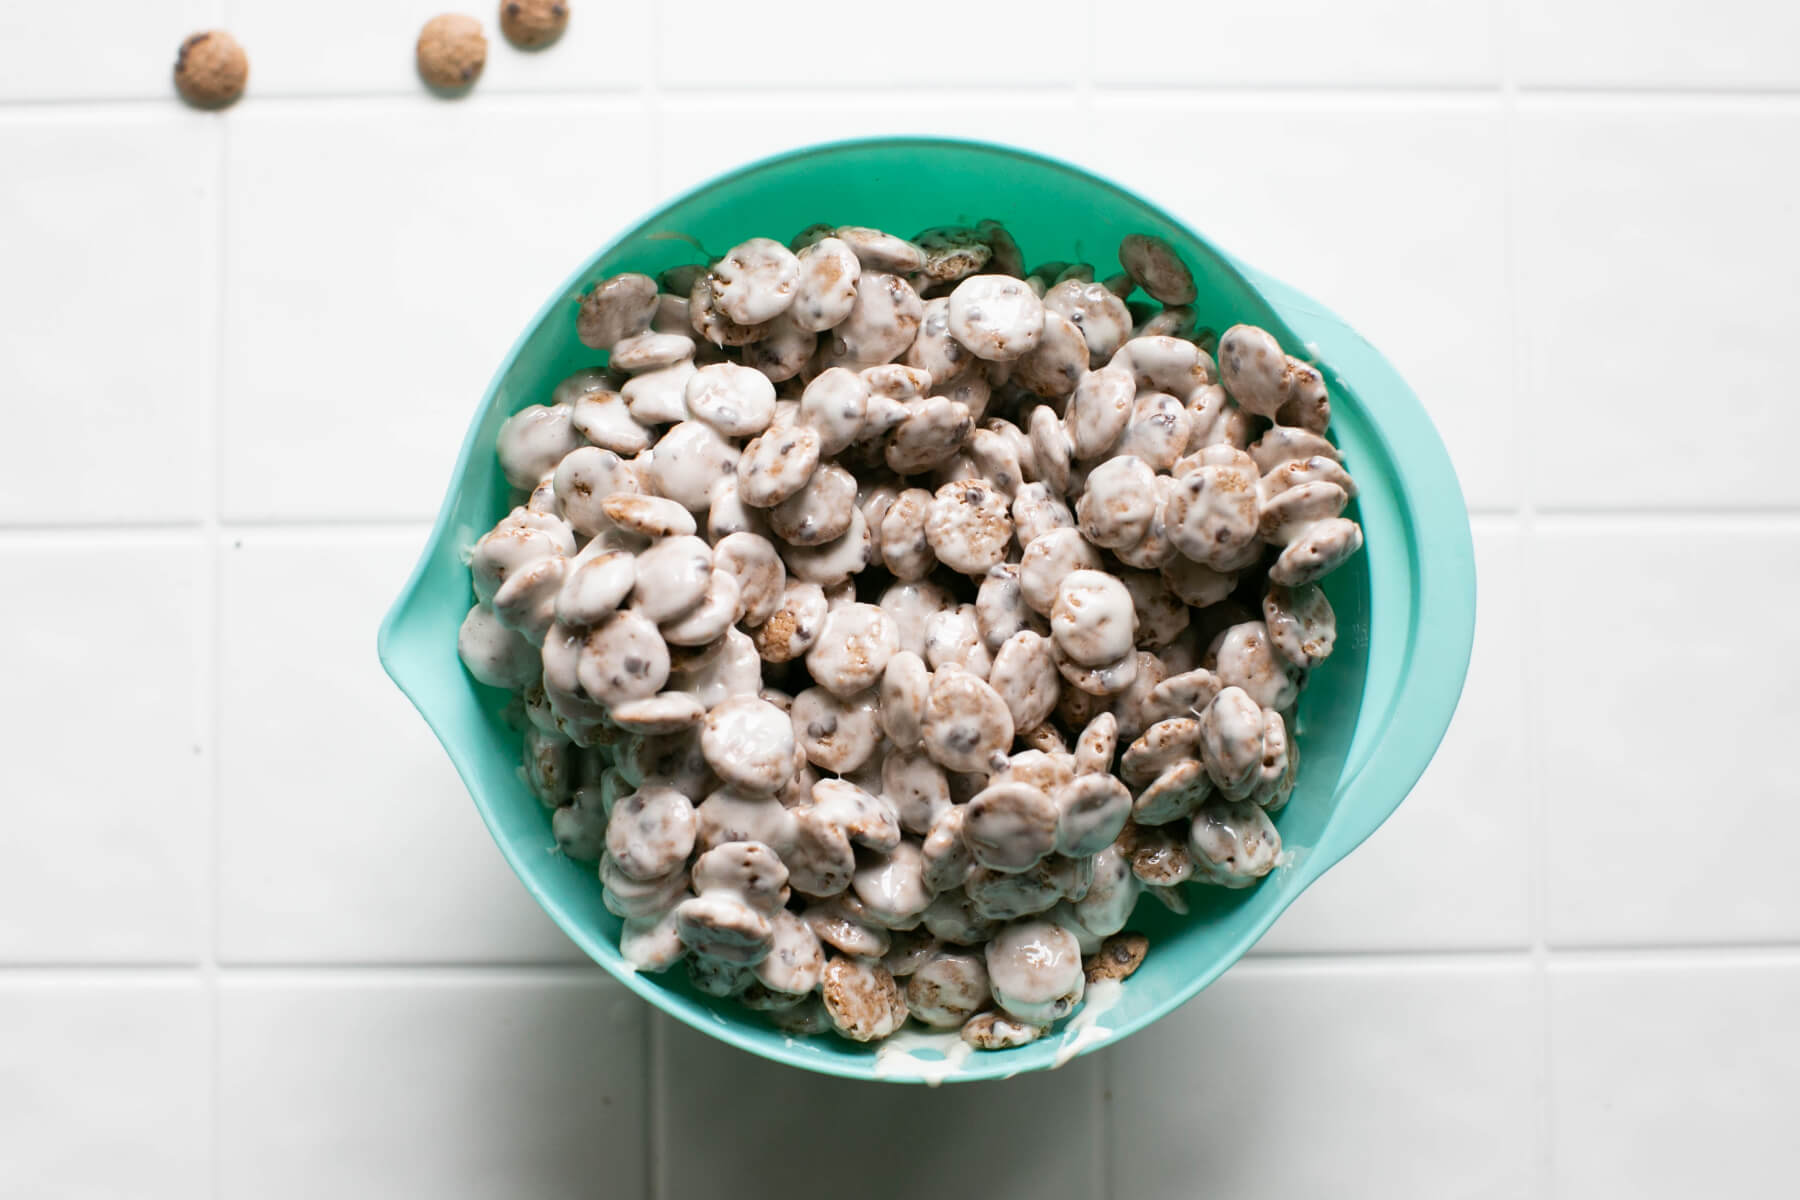 evenly coat the cookie crisp cereal with marshmallows